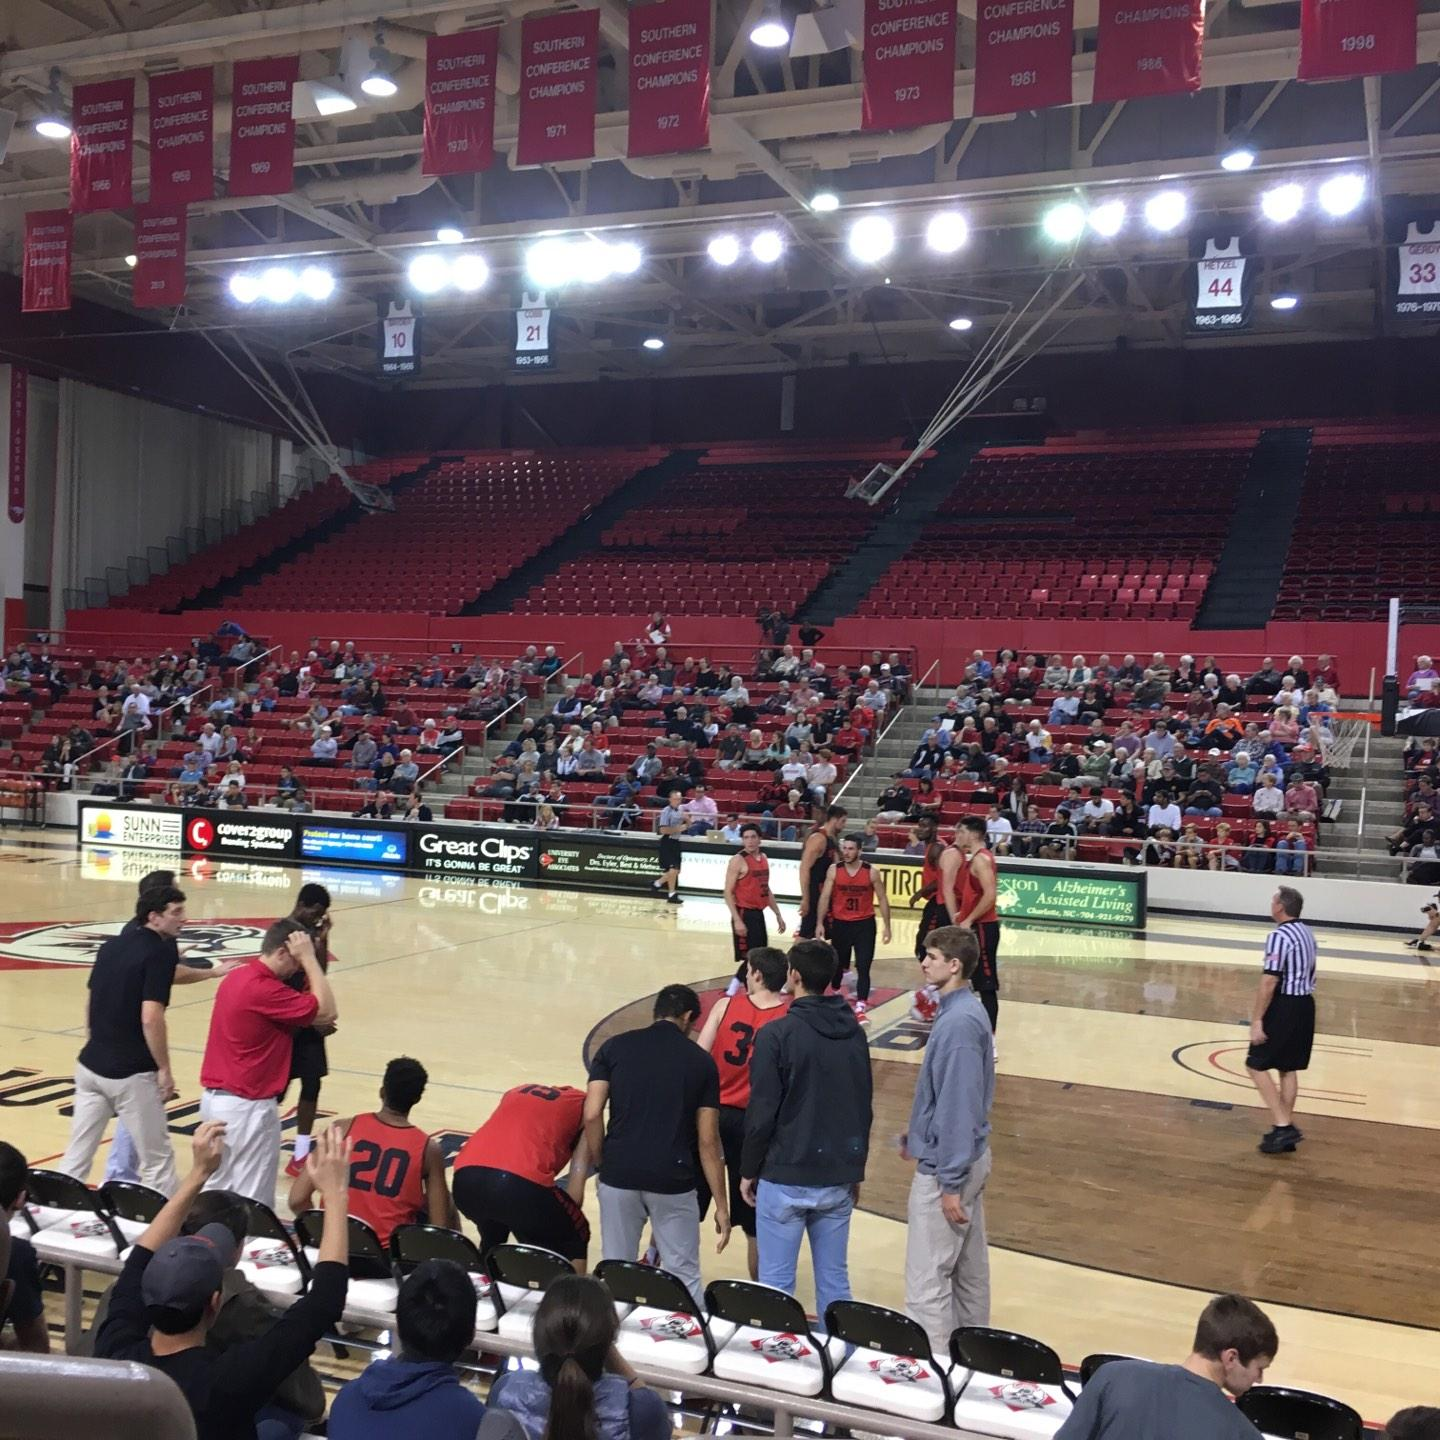 John M. Belk Arena Section 6 Row C Seat 1